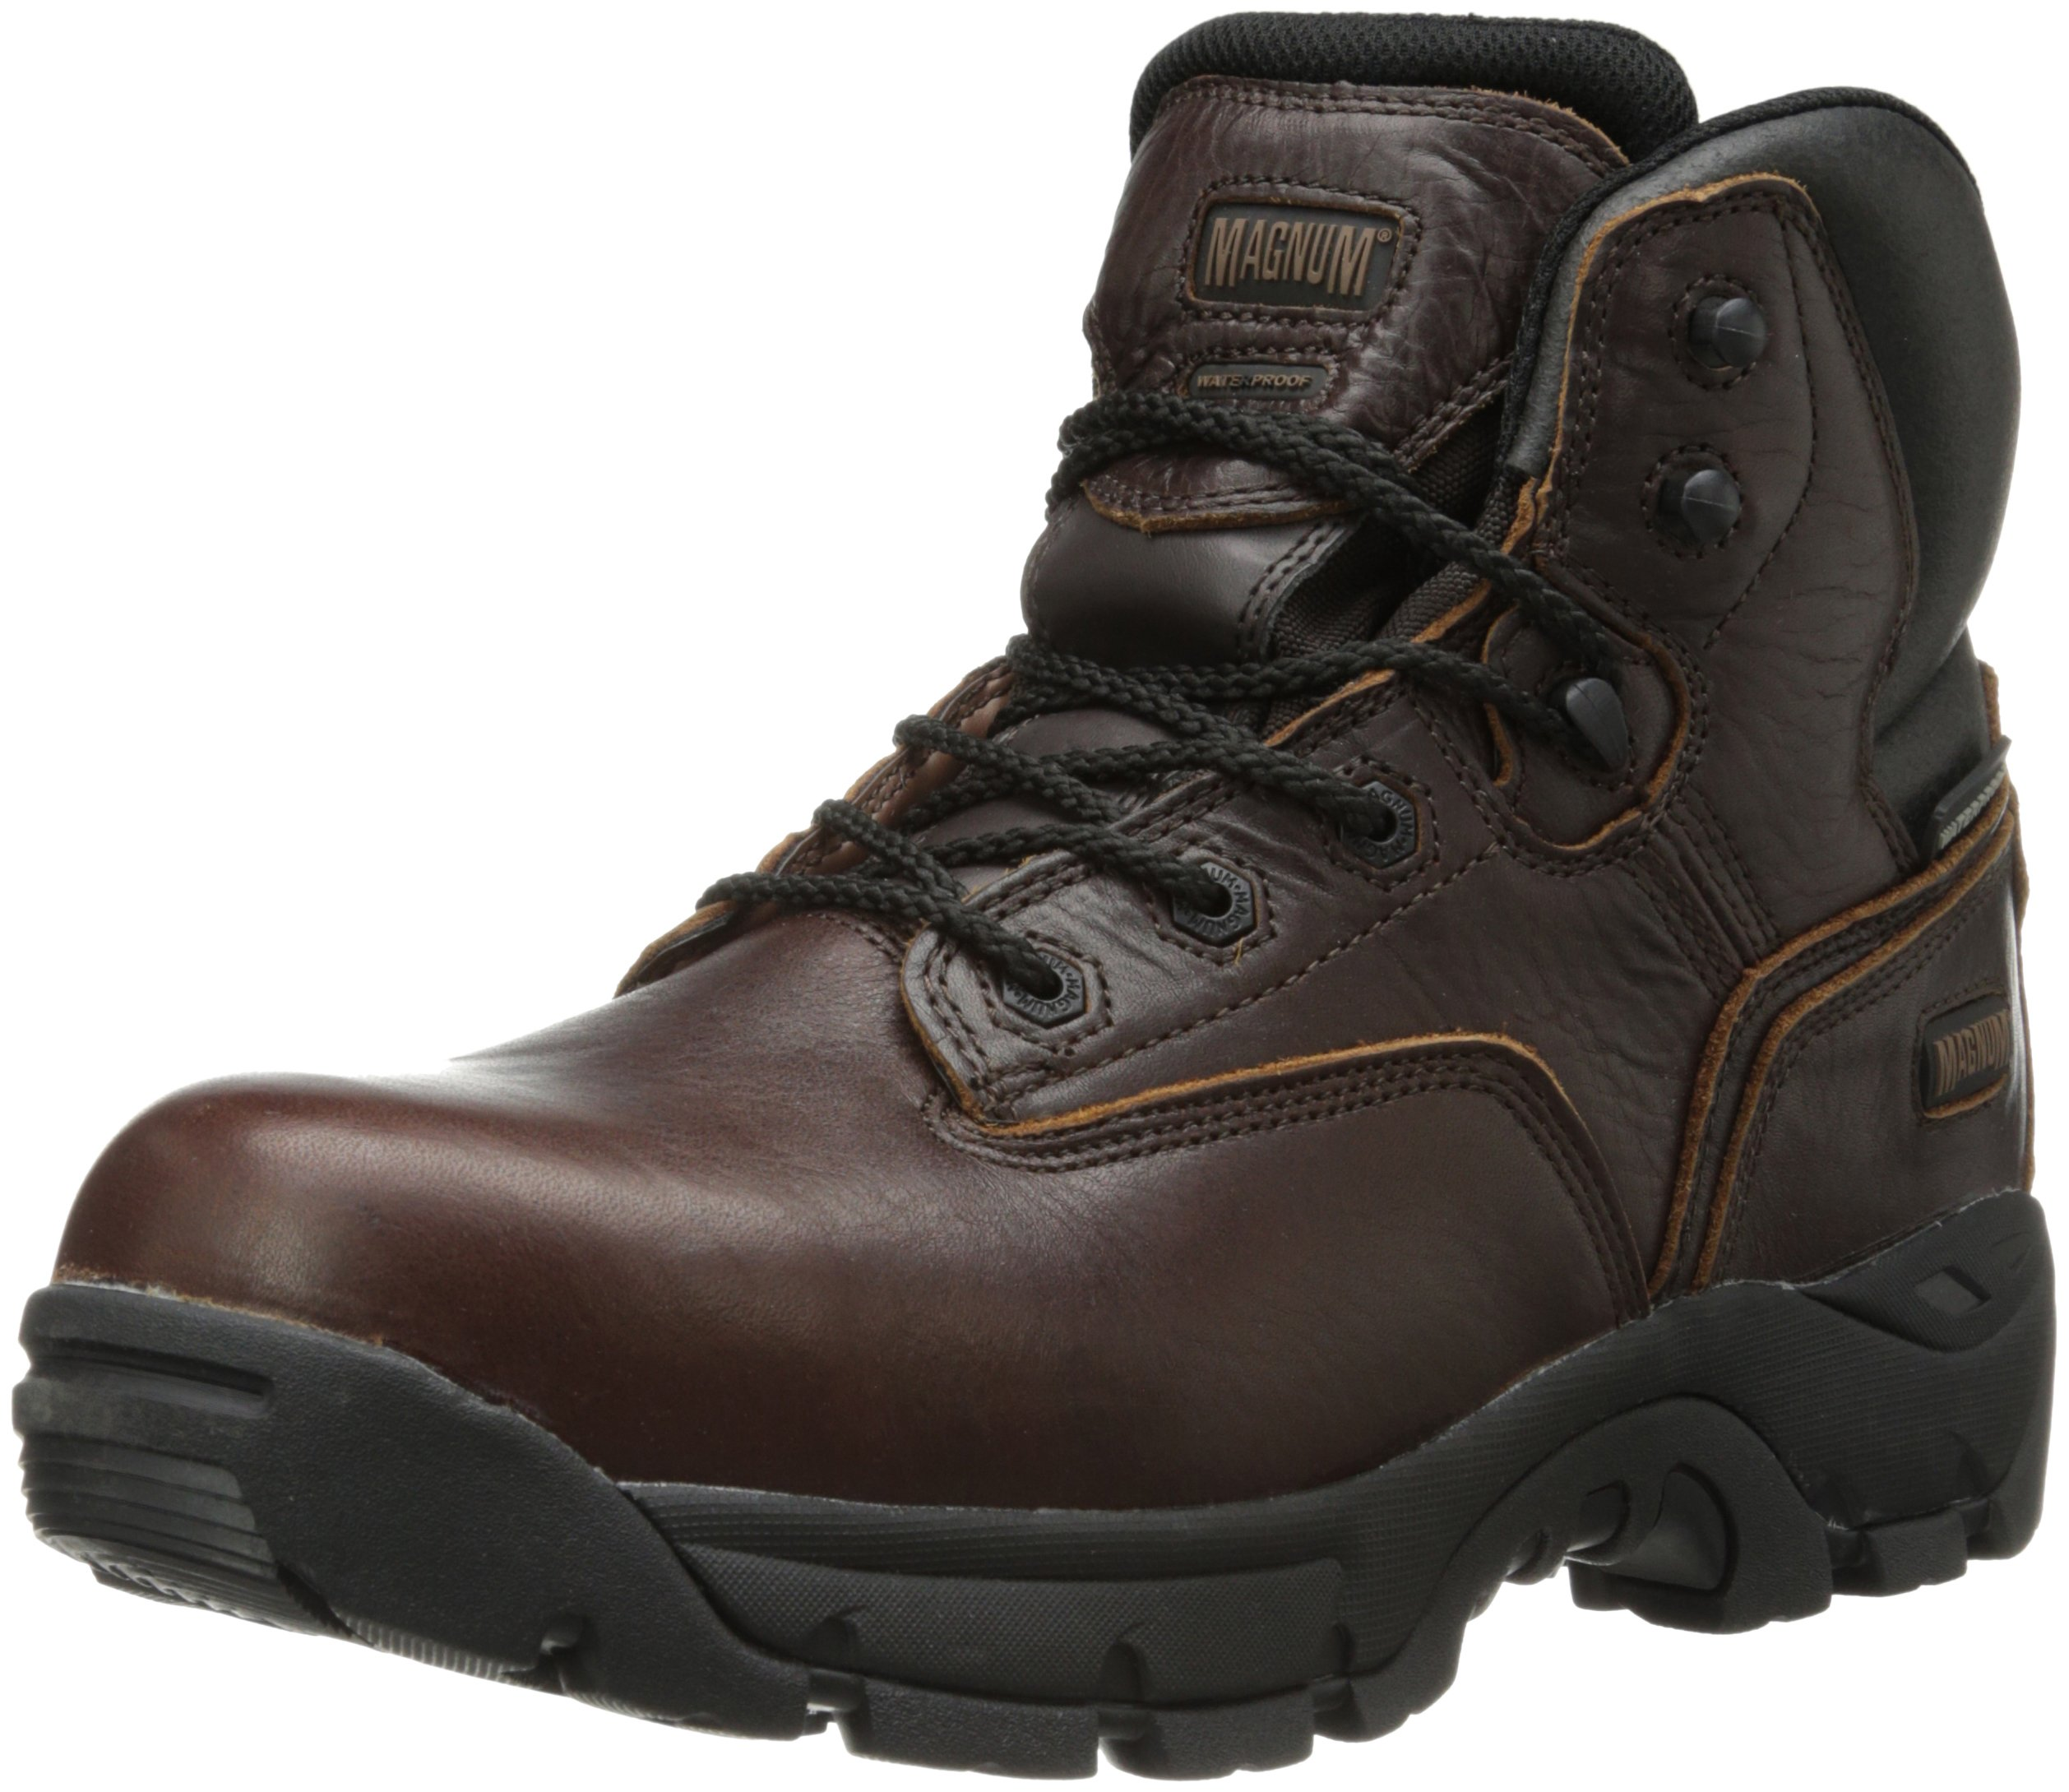 Magnum Men's Precision Ultra Lite II Composite Toe Waterproof Boot,Rioja Brown,9 W US